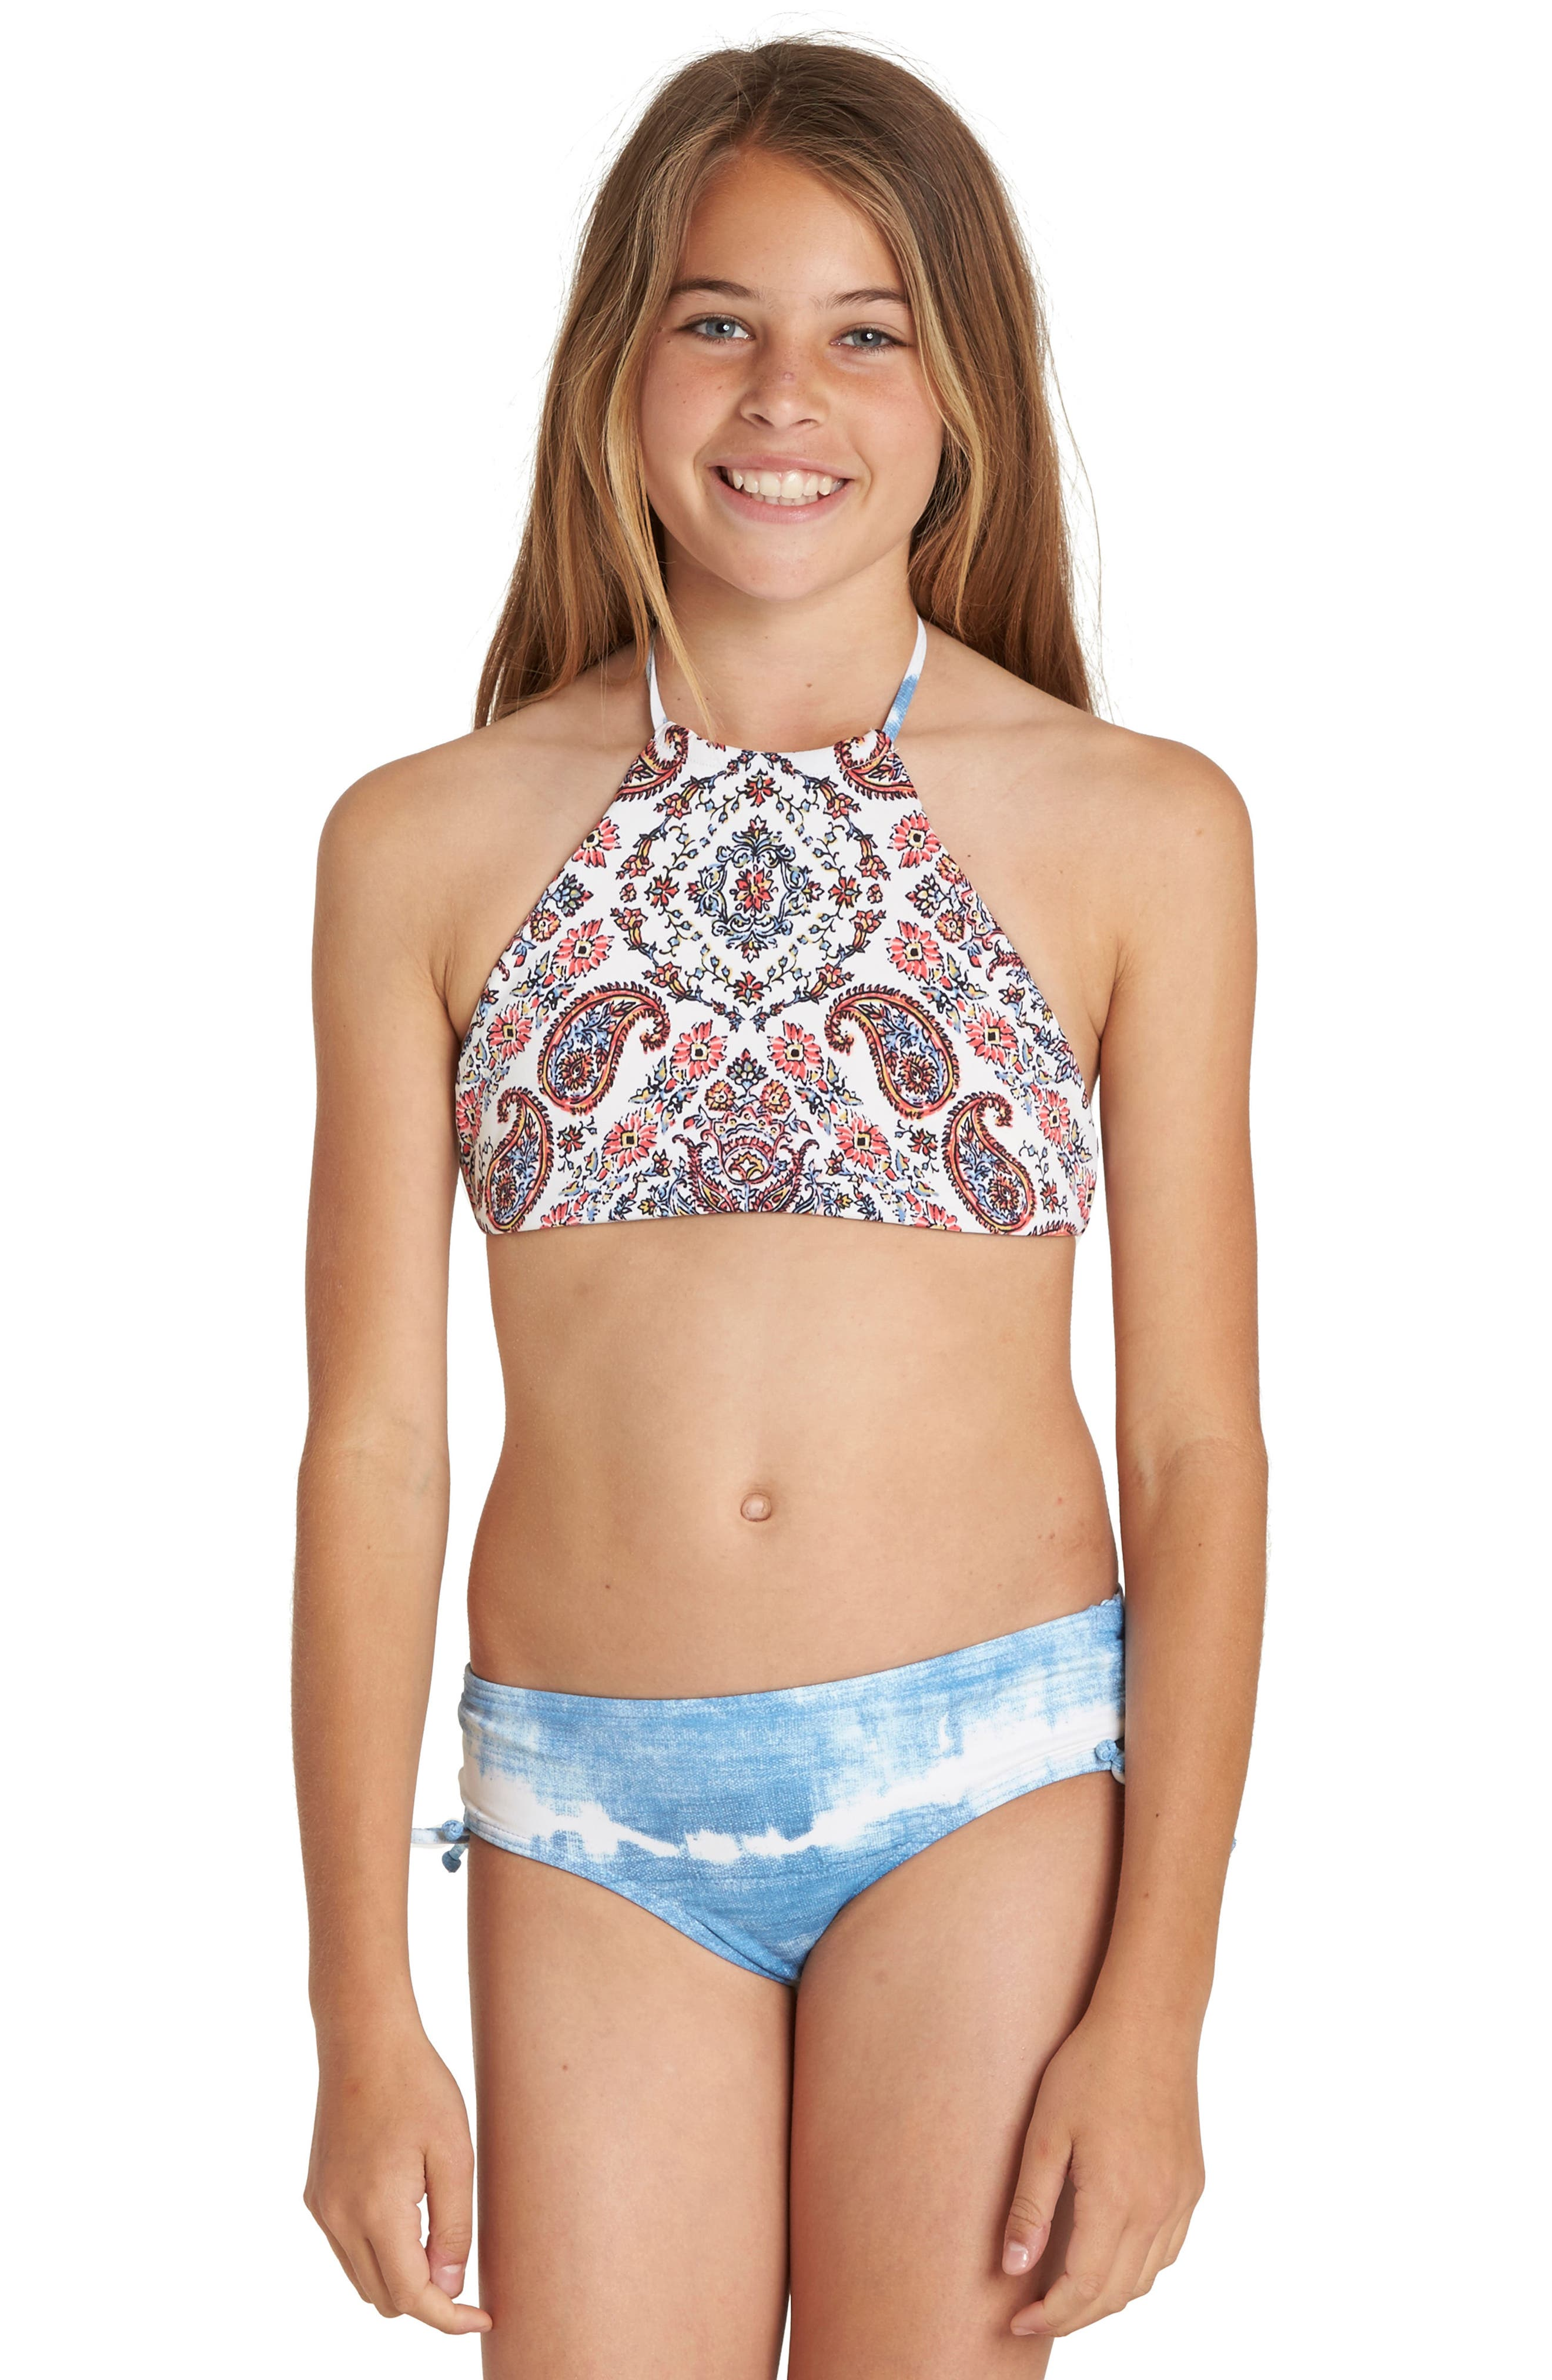 Lil Bliss Two-Piece Halter Swimsuit,                             Main thumbnail 1, color,